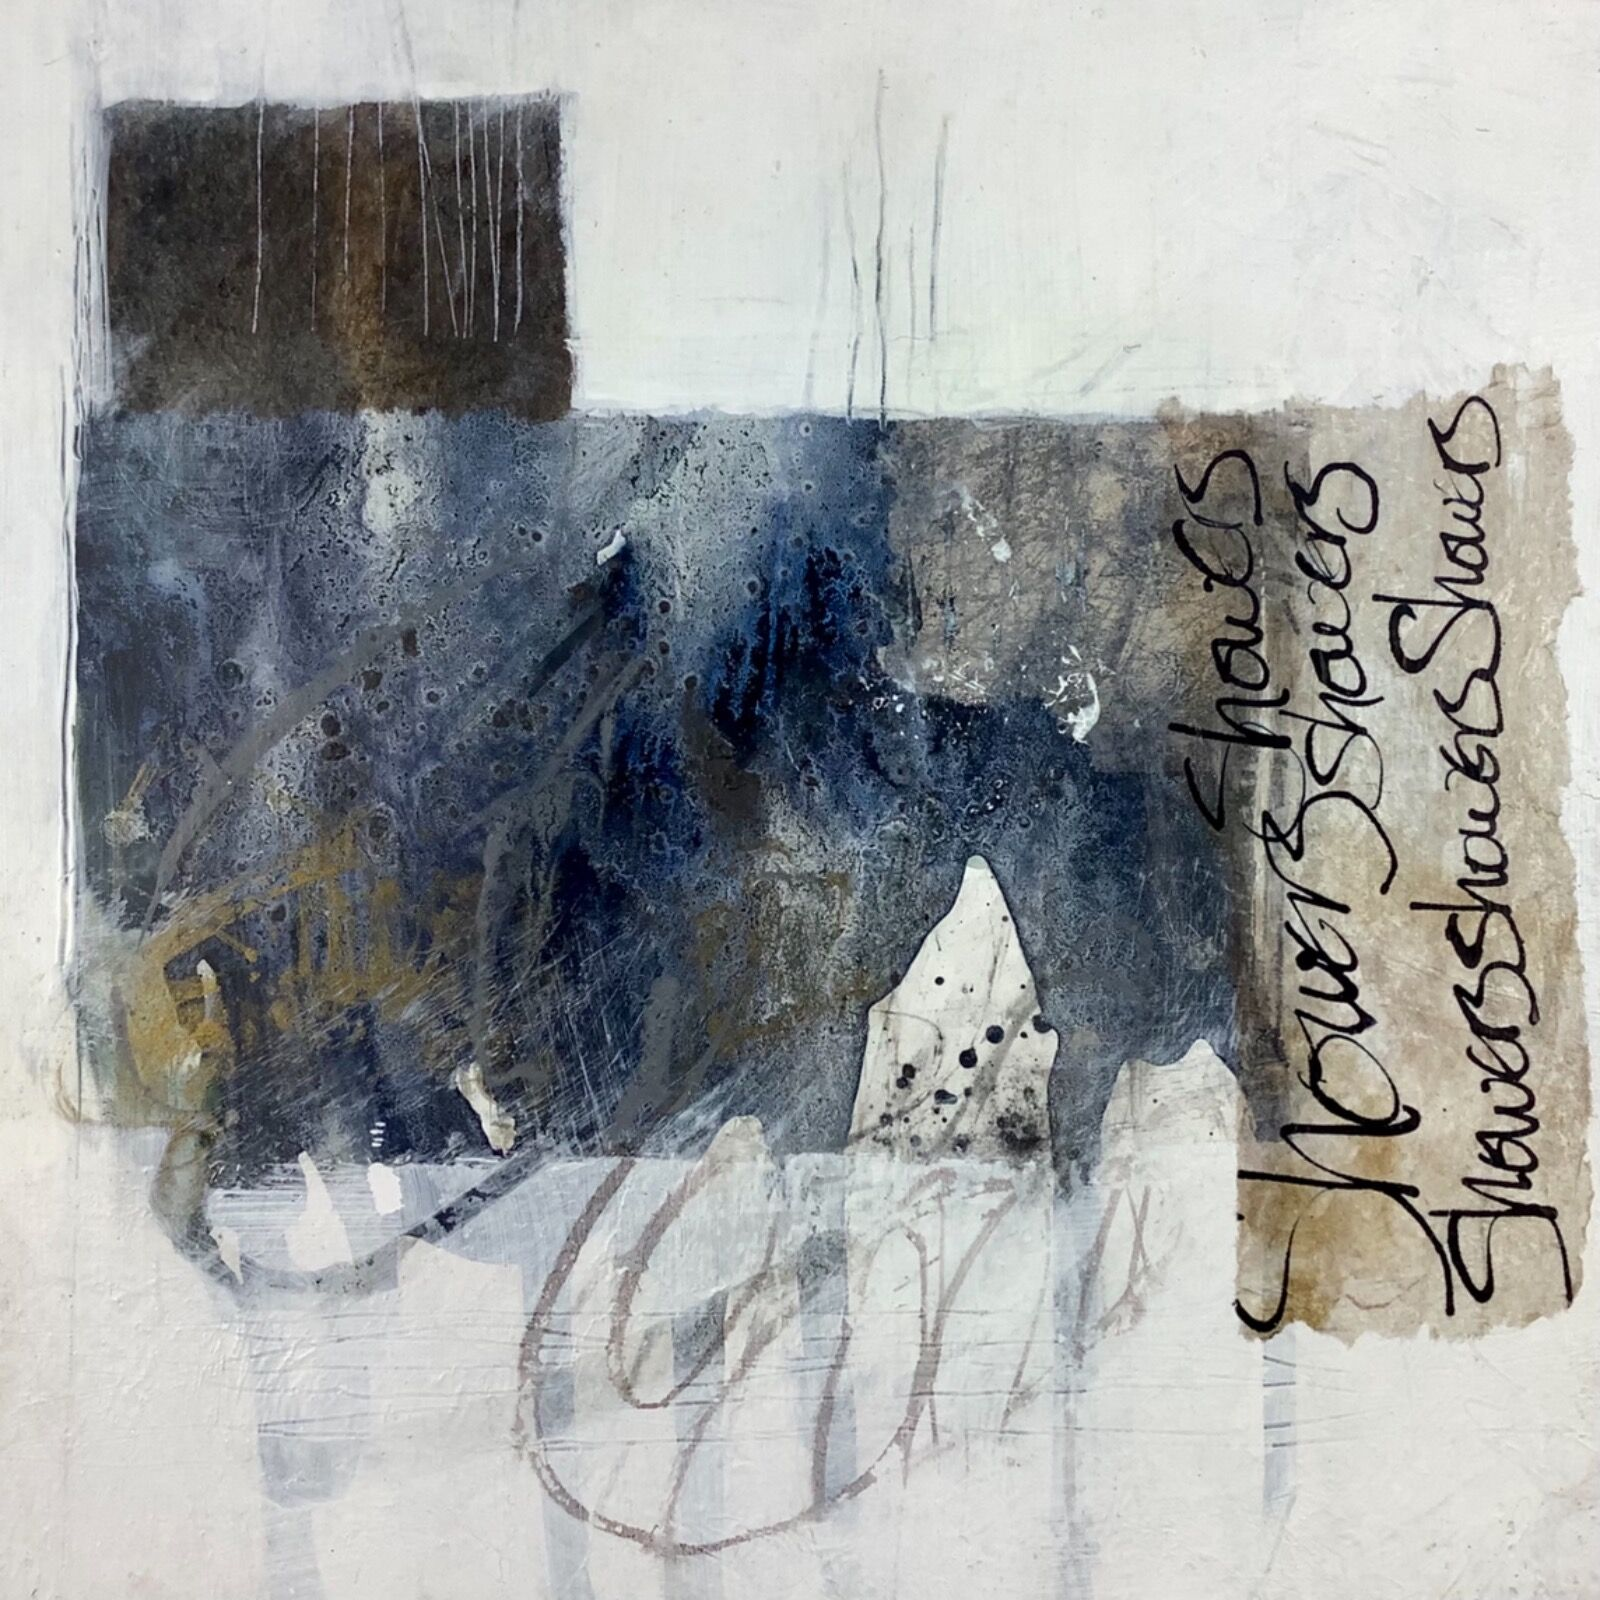 Small abstract painting on wood panel for sale by artist Mari French